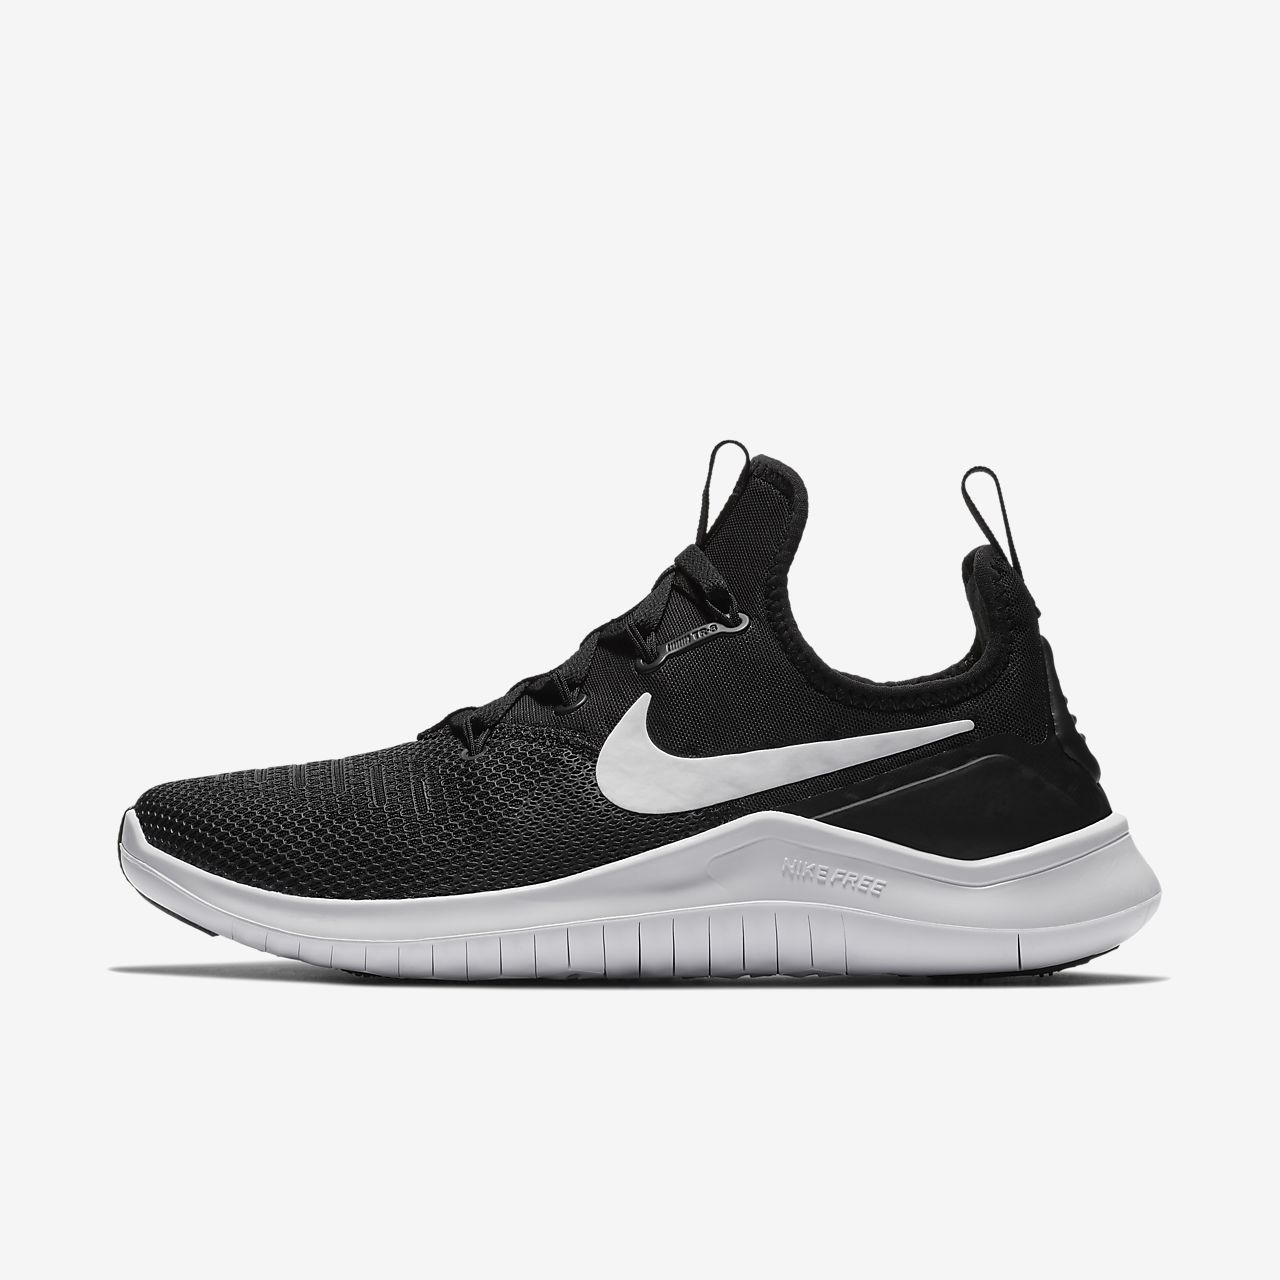 303298b303f9b Nike Free TR8 Women s Gym HIIT Cross Training Shoe. Nike.com CA